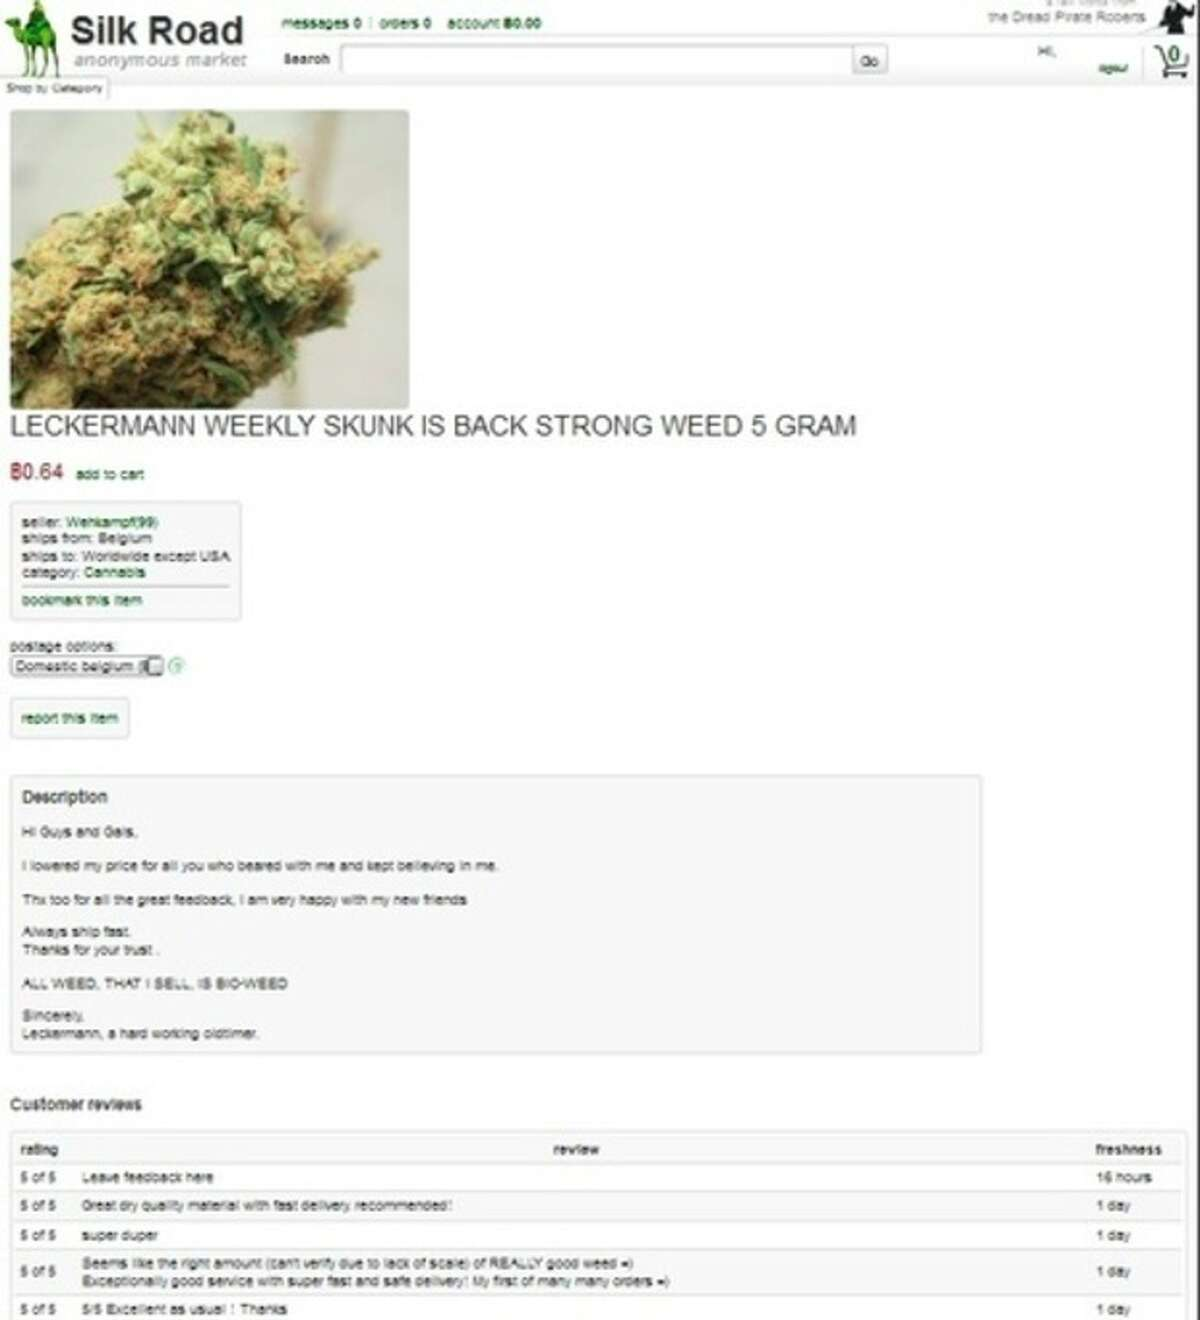 This frame grab from the Silk Road website shows thumbnails for a product allegedly available through the site. On Tuesday, Oct. 1, 2013, FBI agents arrested Ross William Ulbricht, who is accused of operating the secret website, which is believed to have brokered more than $1 billion in transactions for illegal drugs and services. (AP Photo/silkroaddrugs.org)